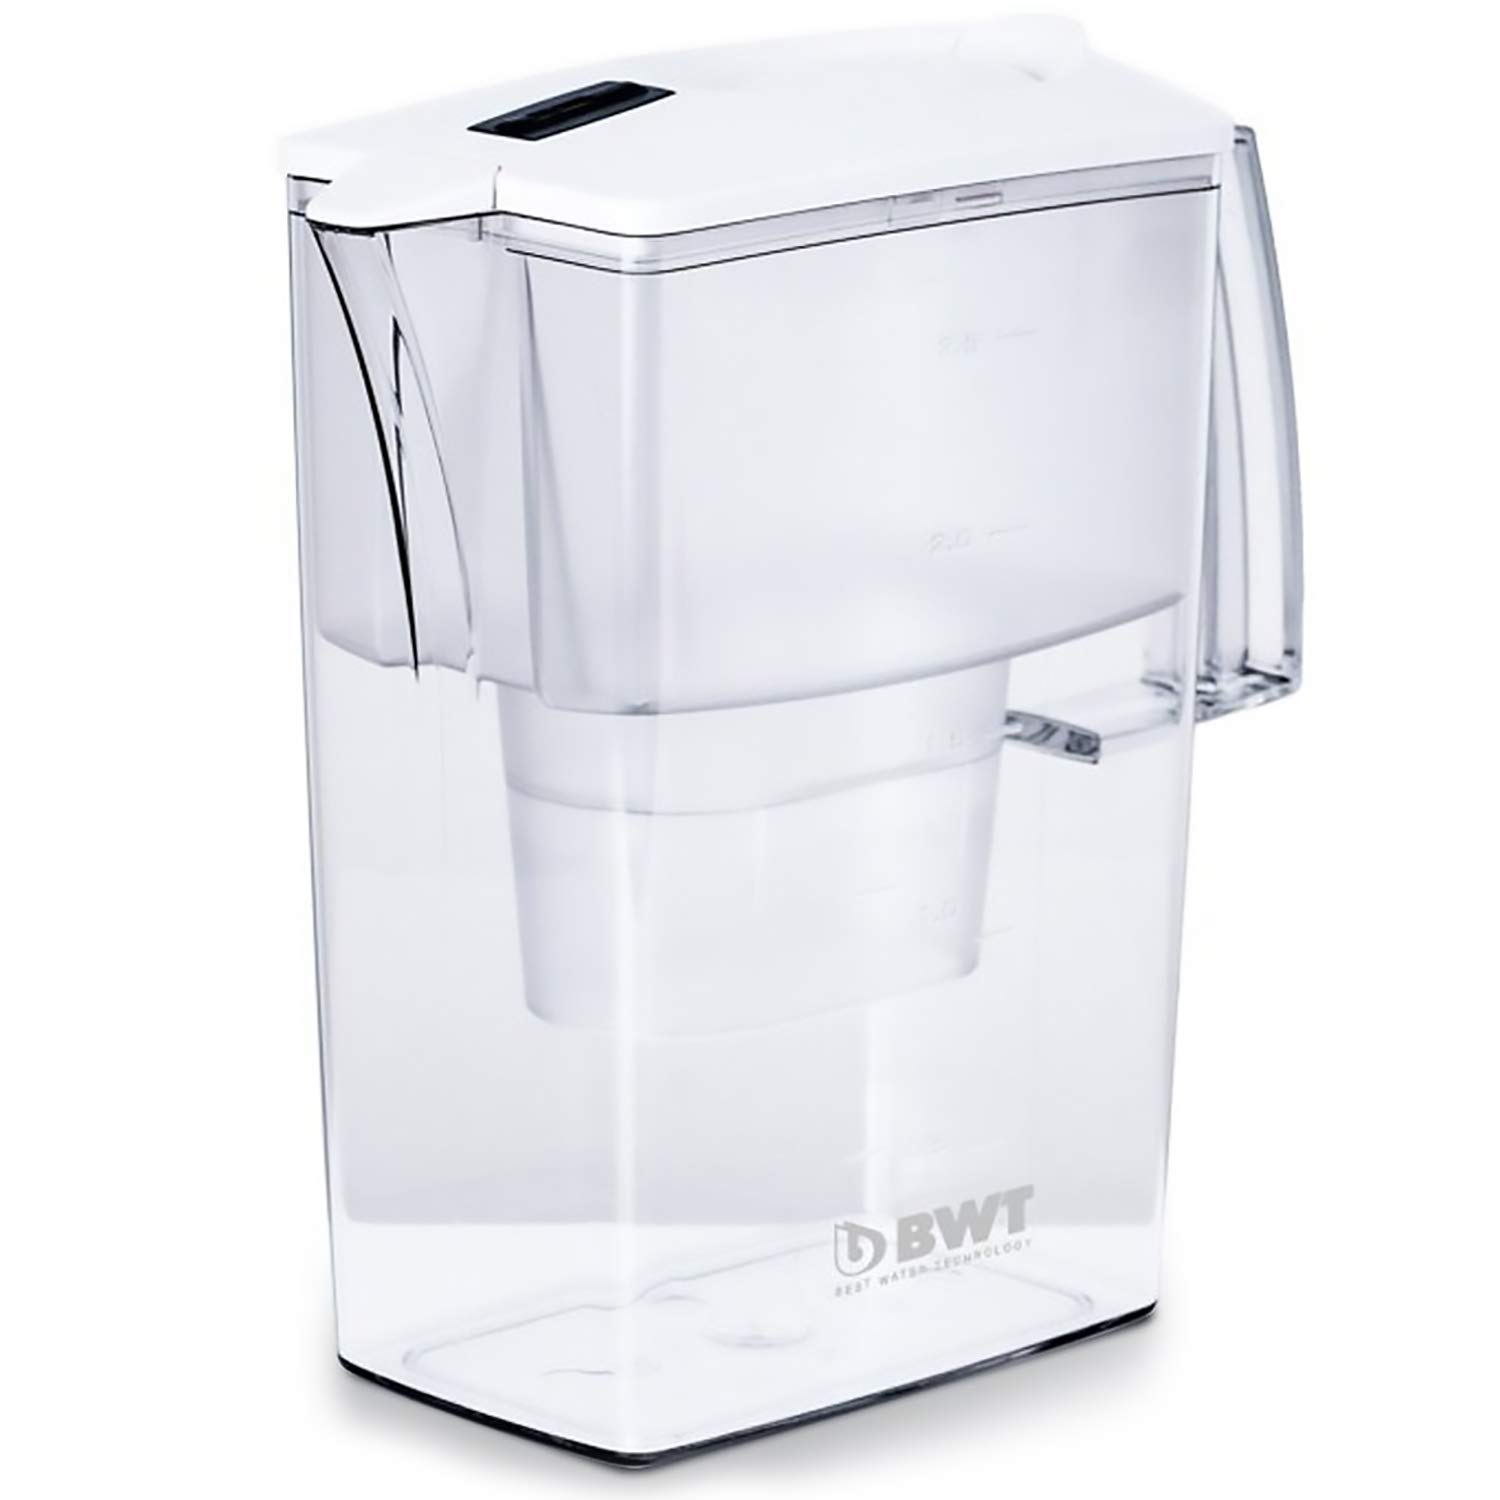 BWT Award Winning Austrian Quality Compact Water Filter Pitcher, Patented Magnesium Technology for Superior Filtration and Taste (Bonus 60 Day Filter Included) BPAFree